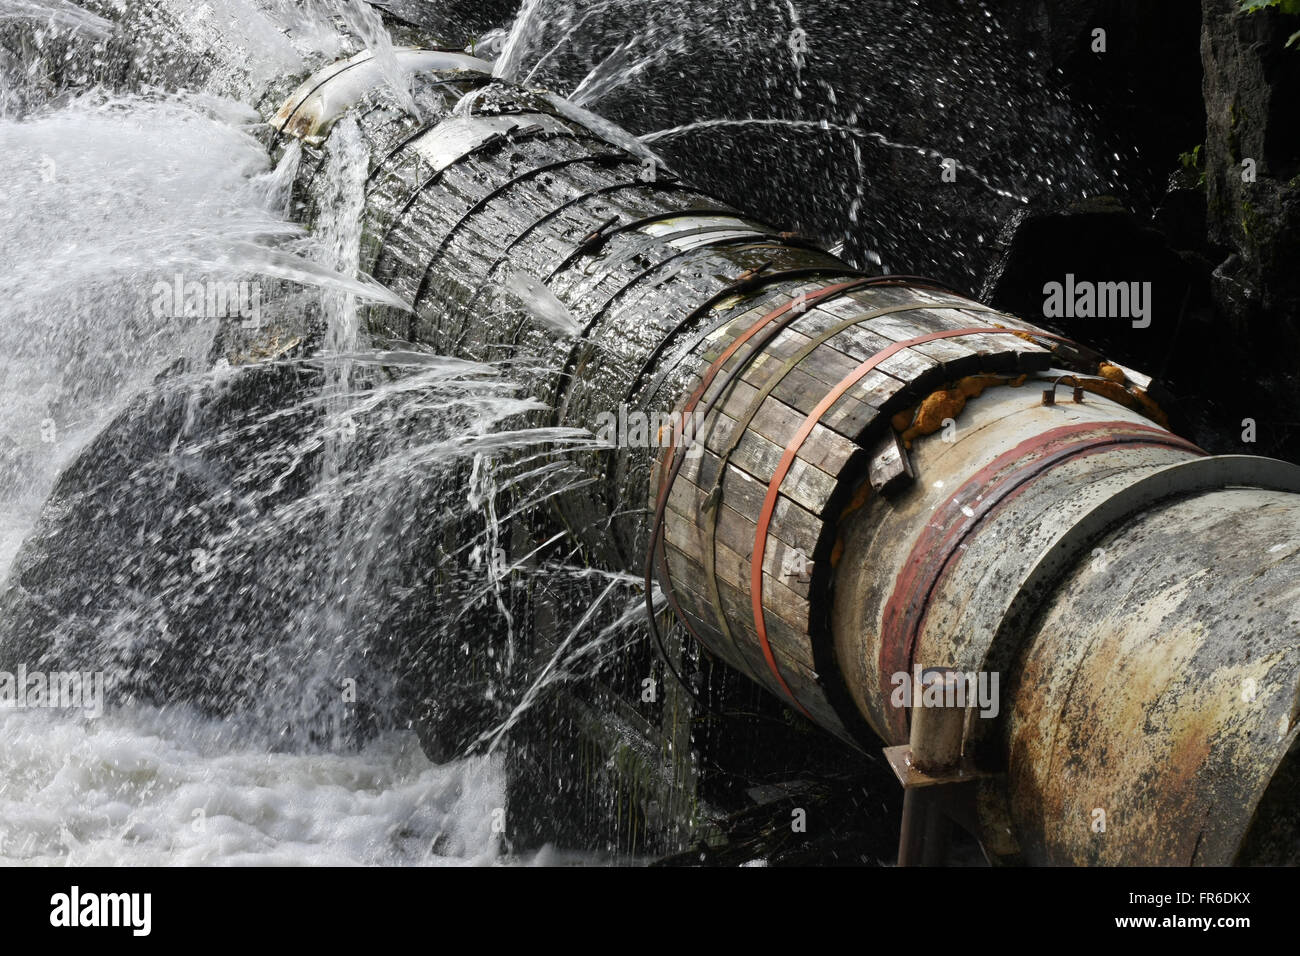 A broken pipe that leaks water in all directions. Symbol for plumbing or disastrous technical level or status. - Stock Image